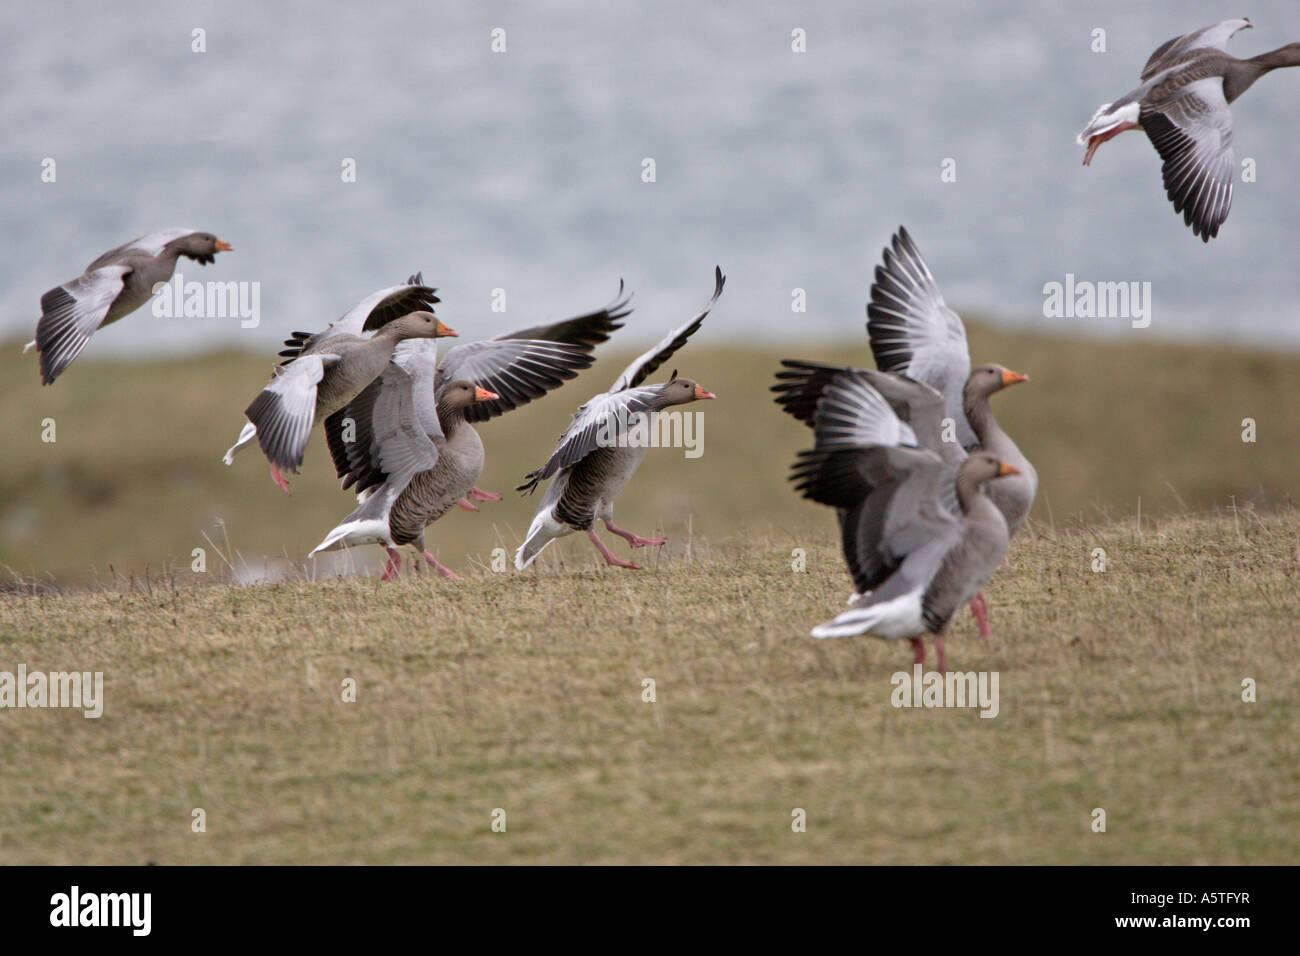 Wild Greylag Geese landing in the Outer Hebrides - Stock Image